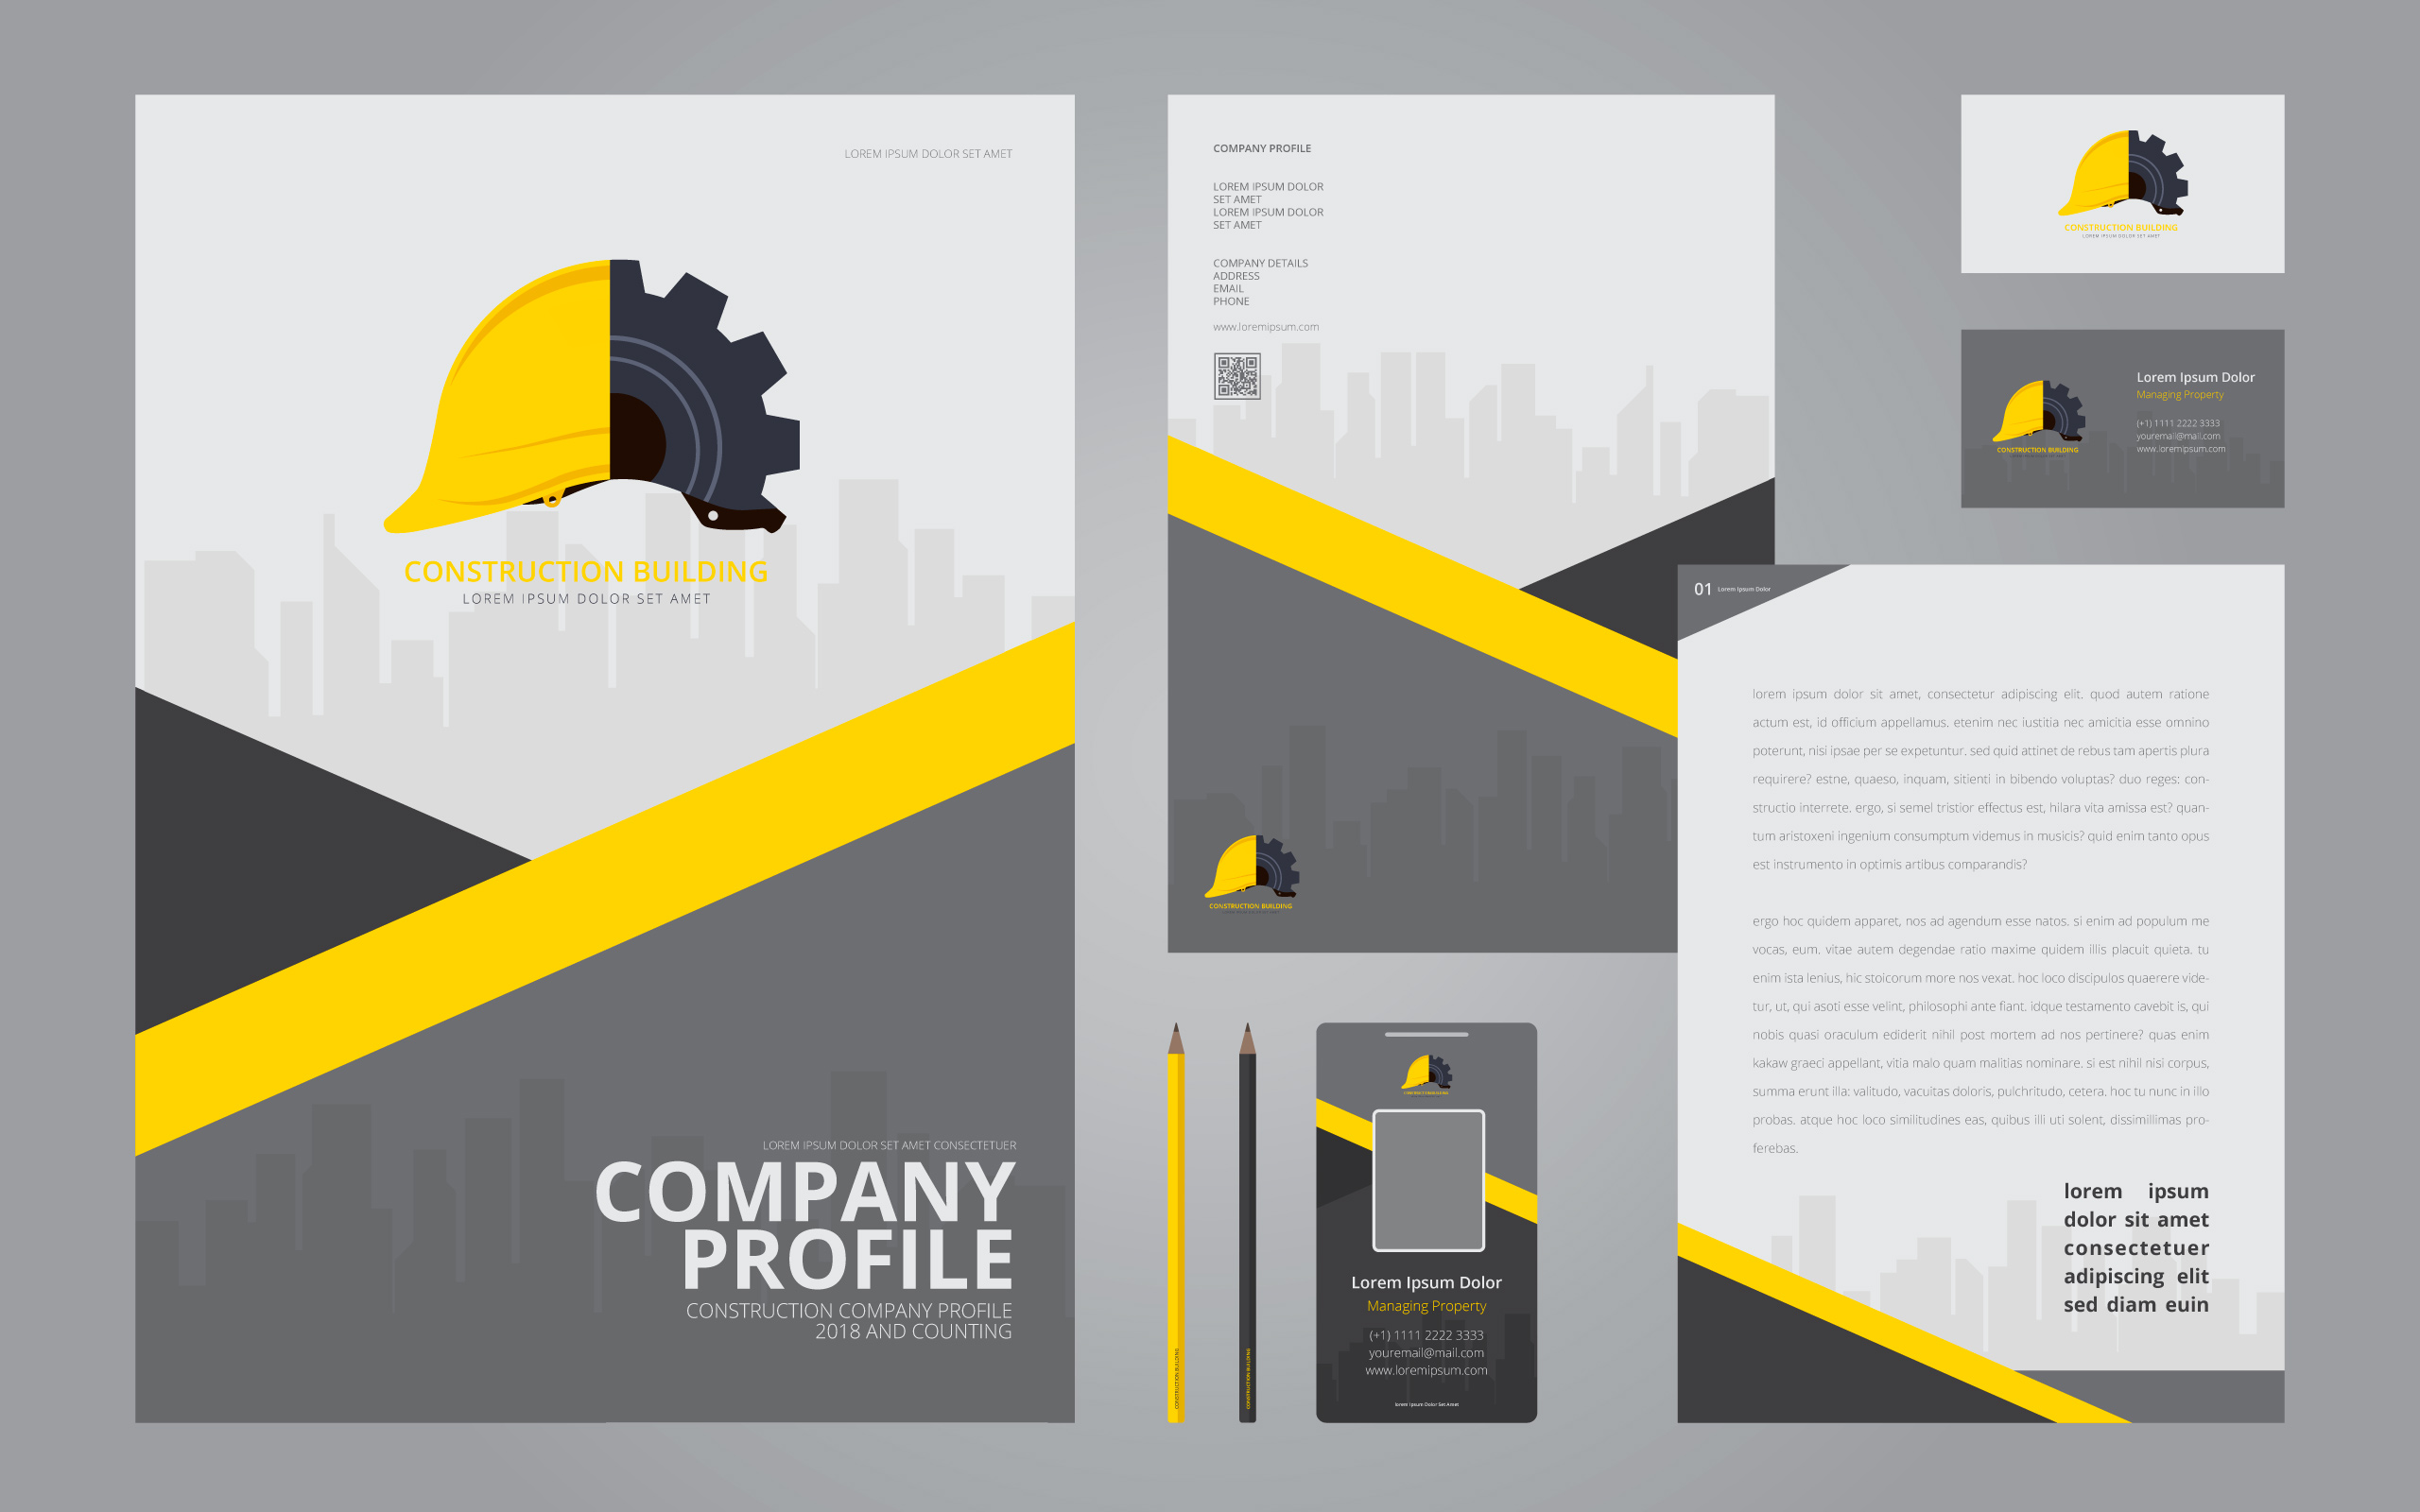 Company Profile Template Vectors Download Free Vector Art Stock  Construction Logos In Stationery Set Media Construction  Company Profile Templates